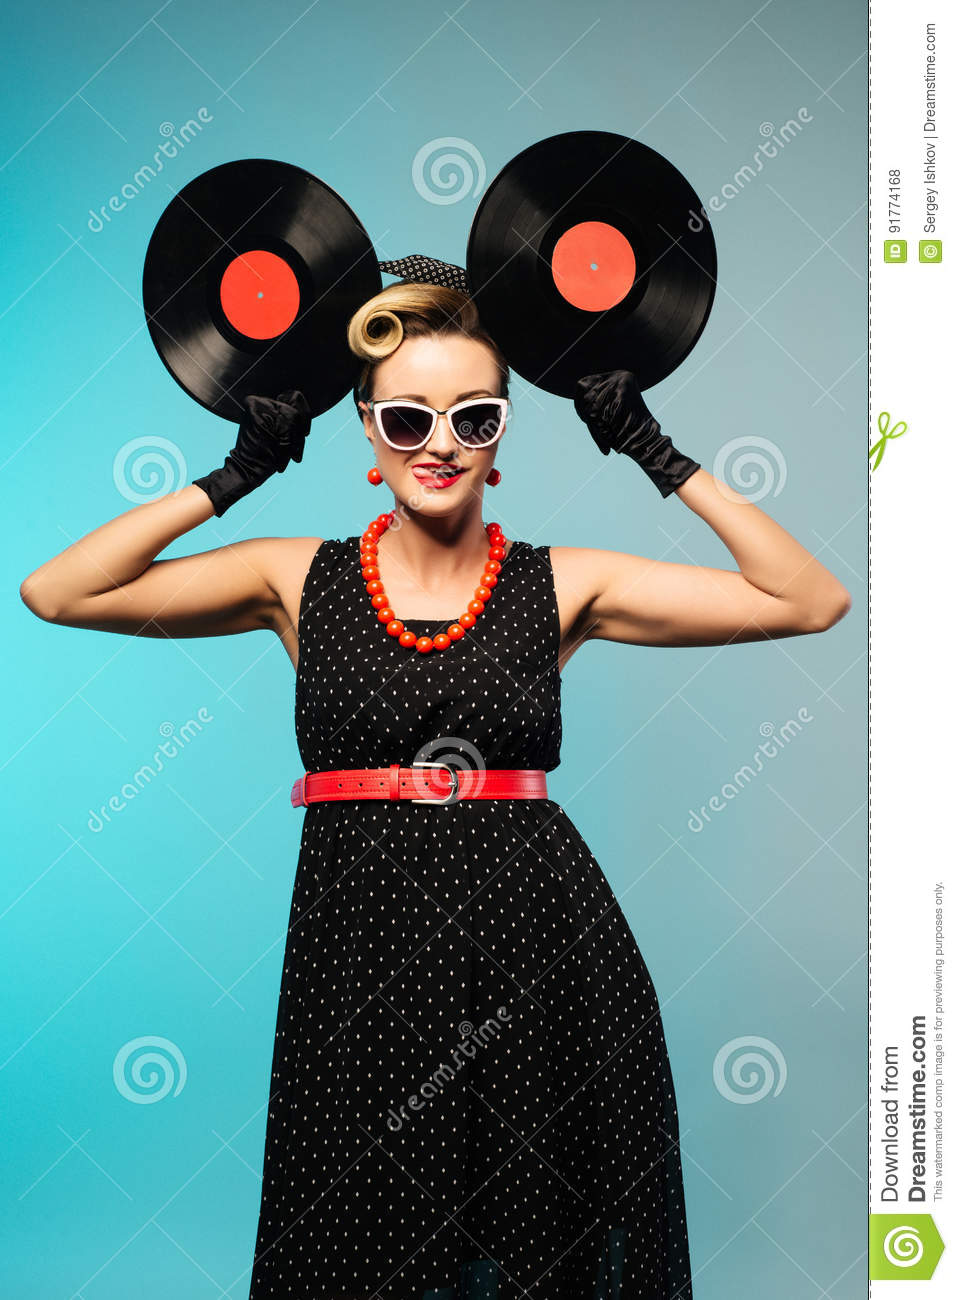 Pretty pin-up woman with retro hairstyle and make-up posing with vinyl record over blue background.